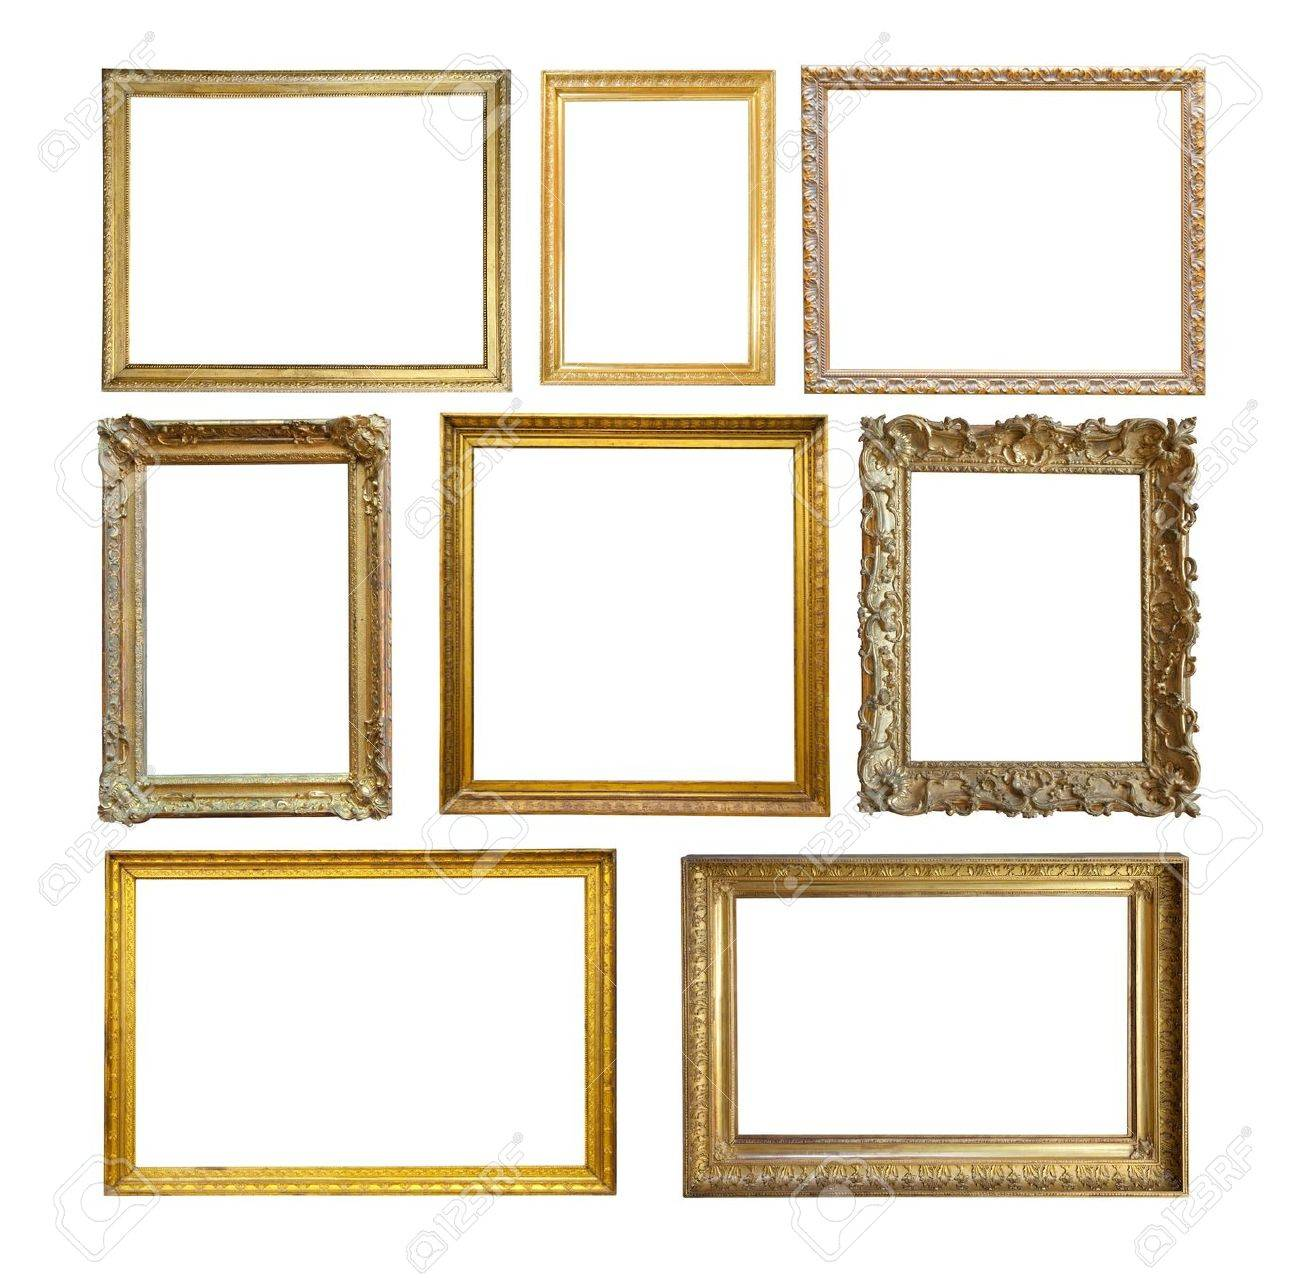 Set of  Vintage gold picture frame. Stock Photo - 7322336